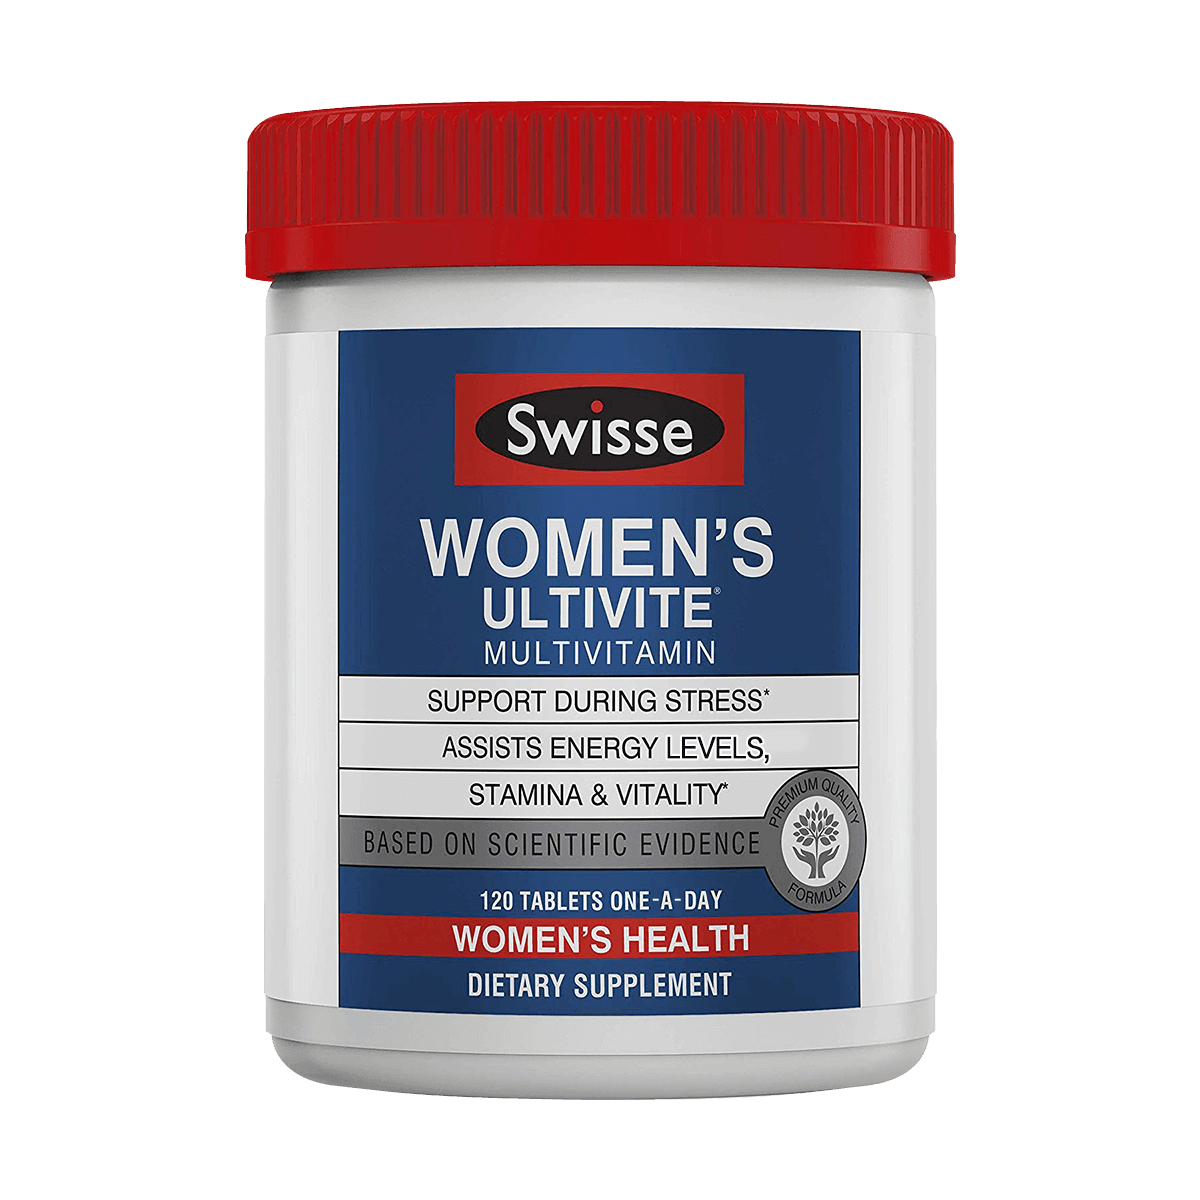 Yamibuy.com:Customer reviews:SWISSE Women Ultivite Multivitamin 120 TABLETS